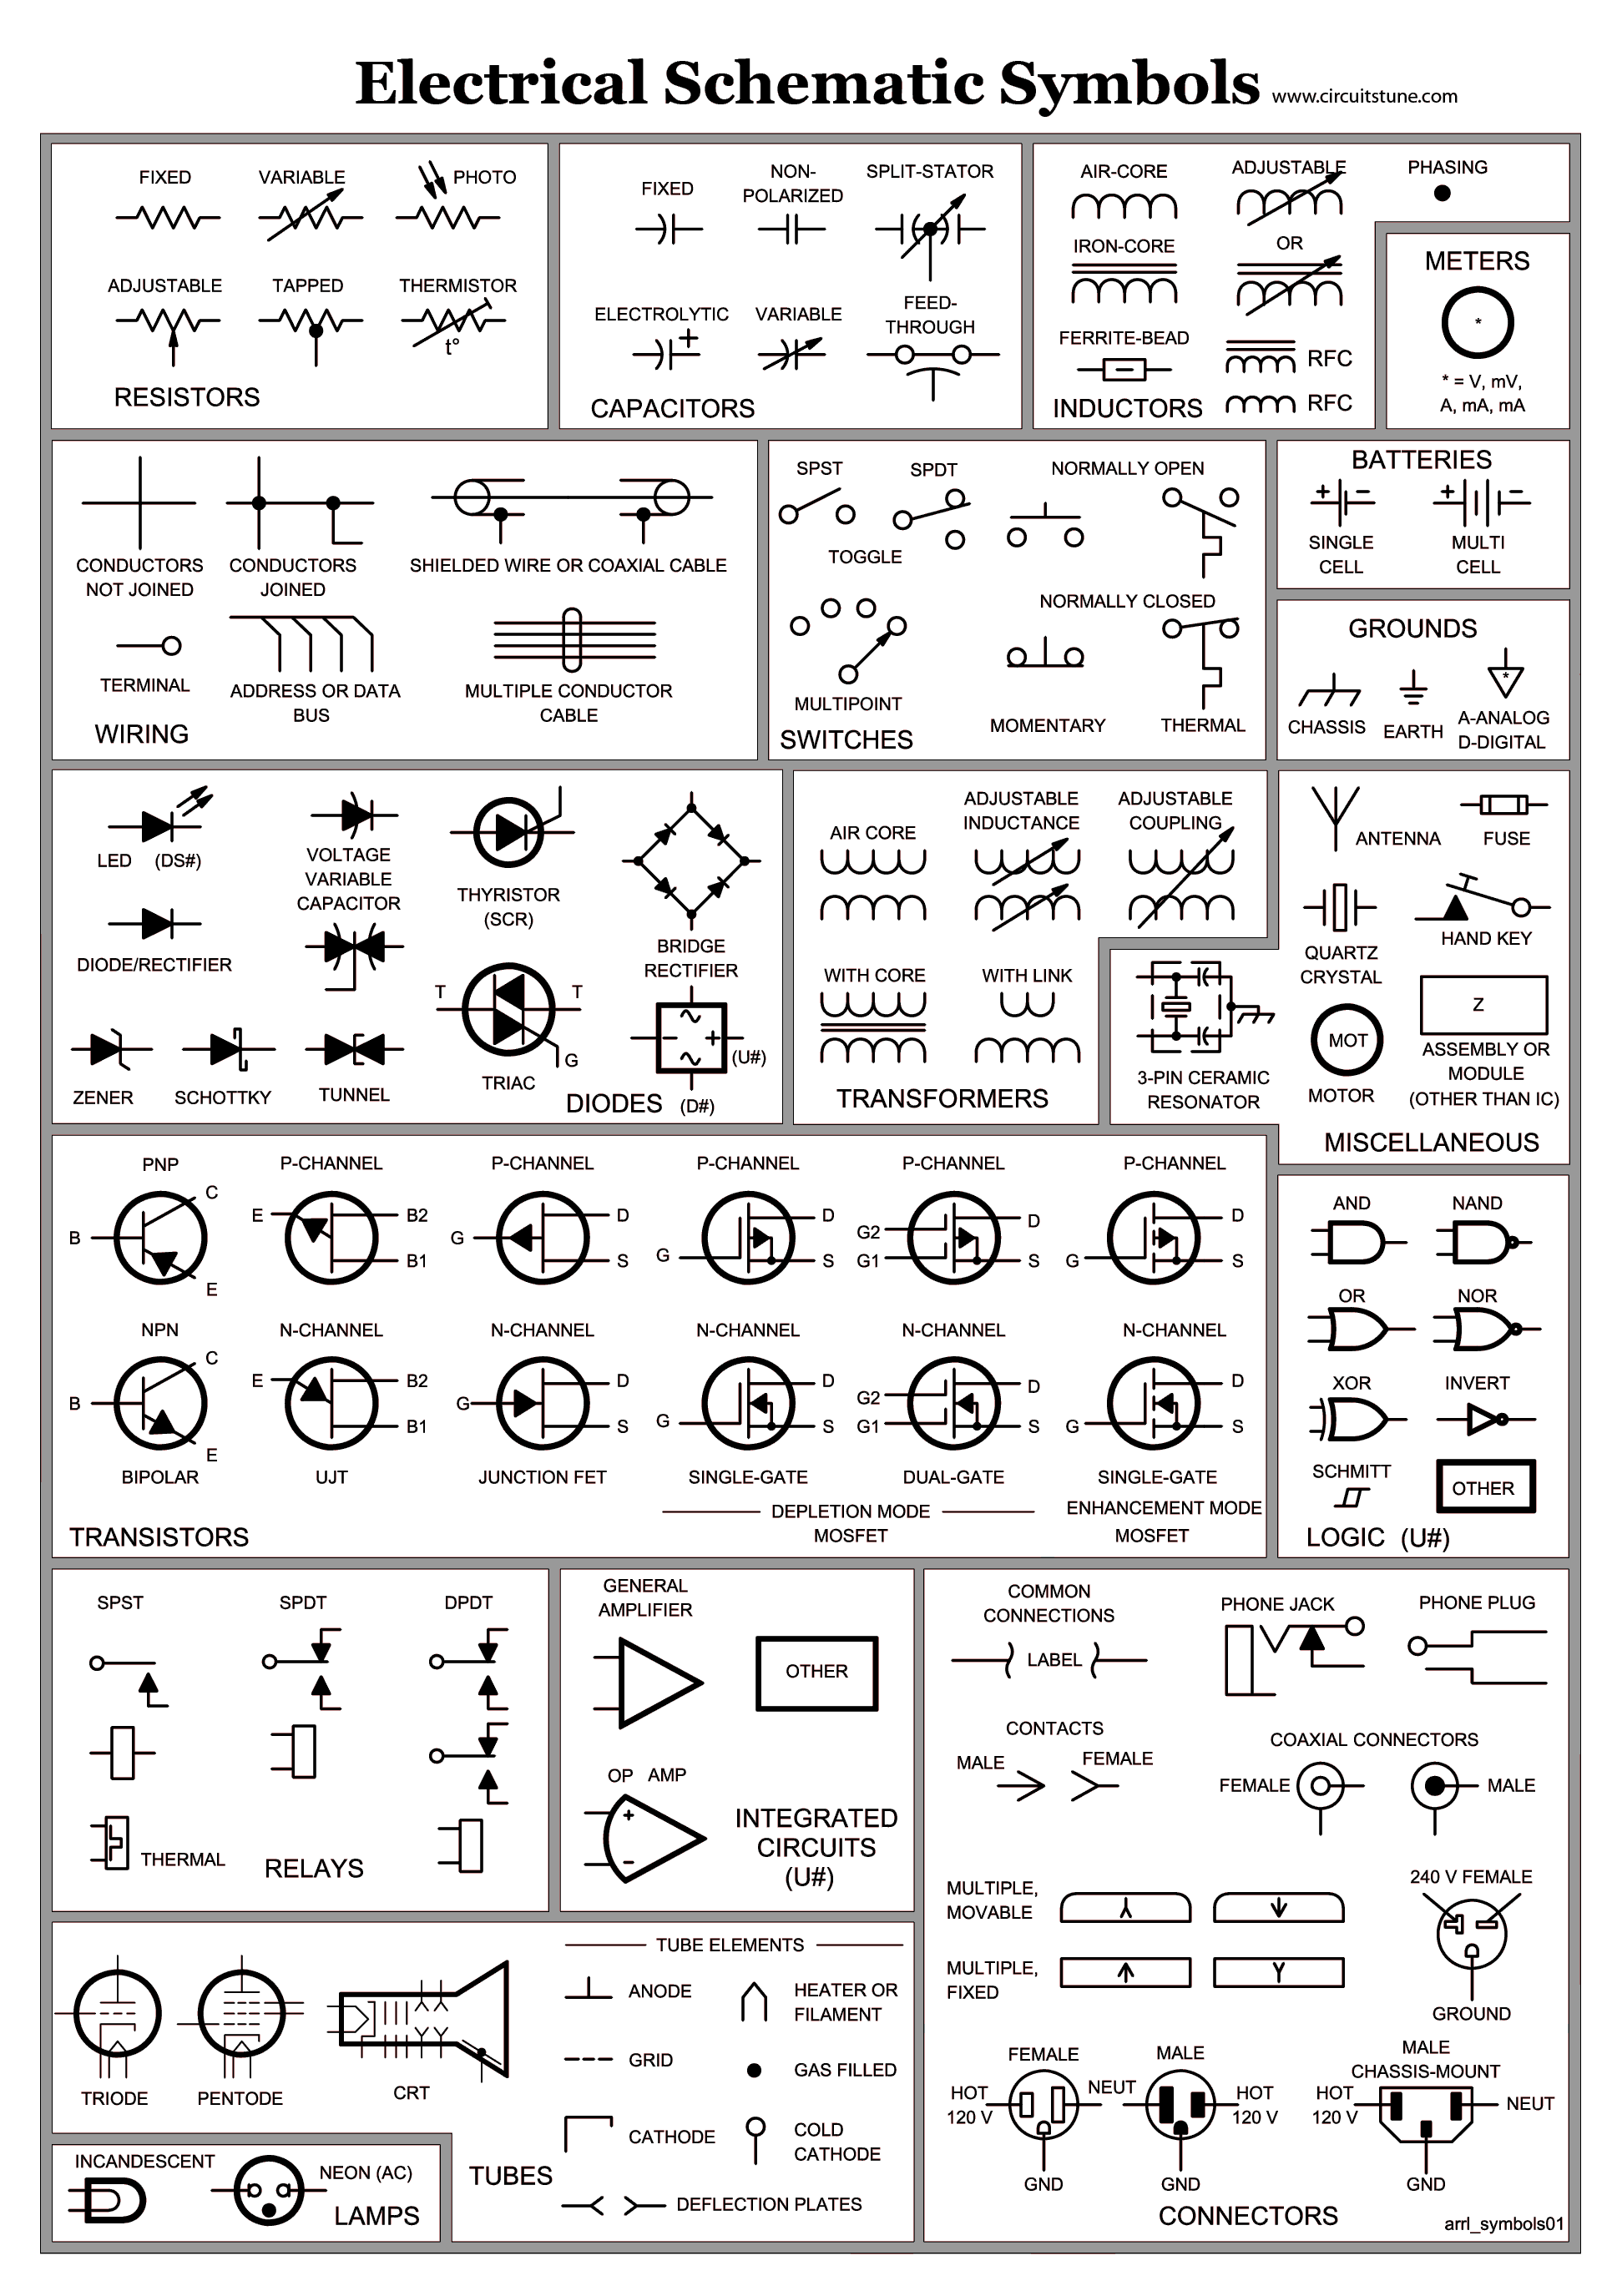 electrical schematic symbols wire diagram symbols automotive wiring rh pinterest com Reading Electrical Schematic Symbols Circuit Schematic Symbols